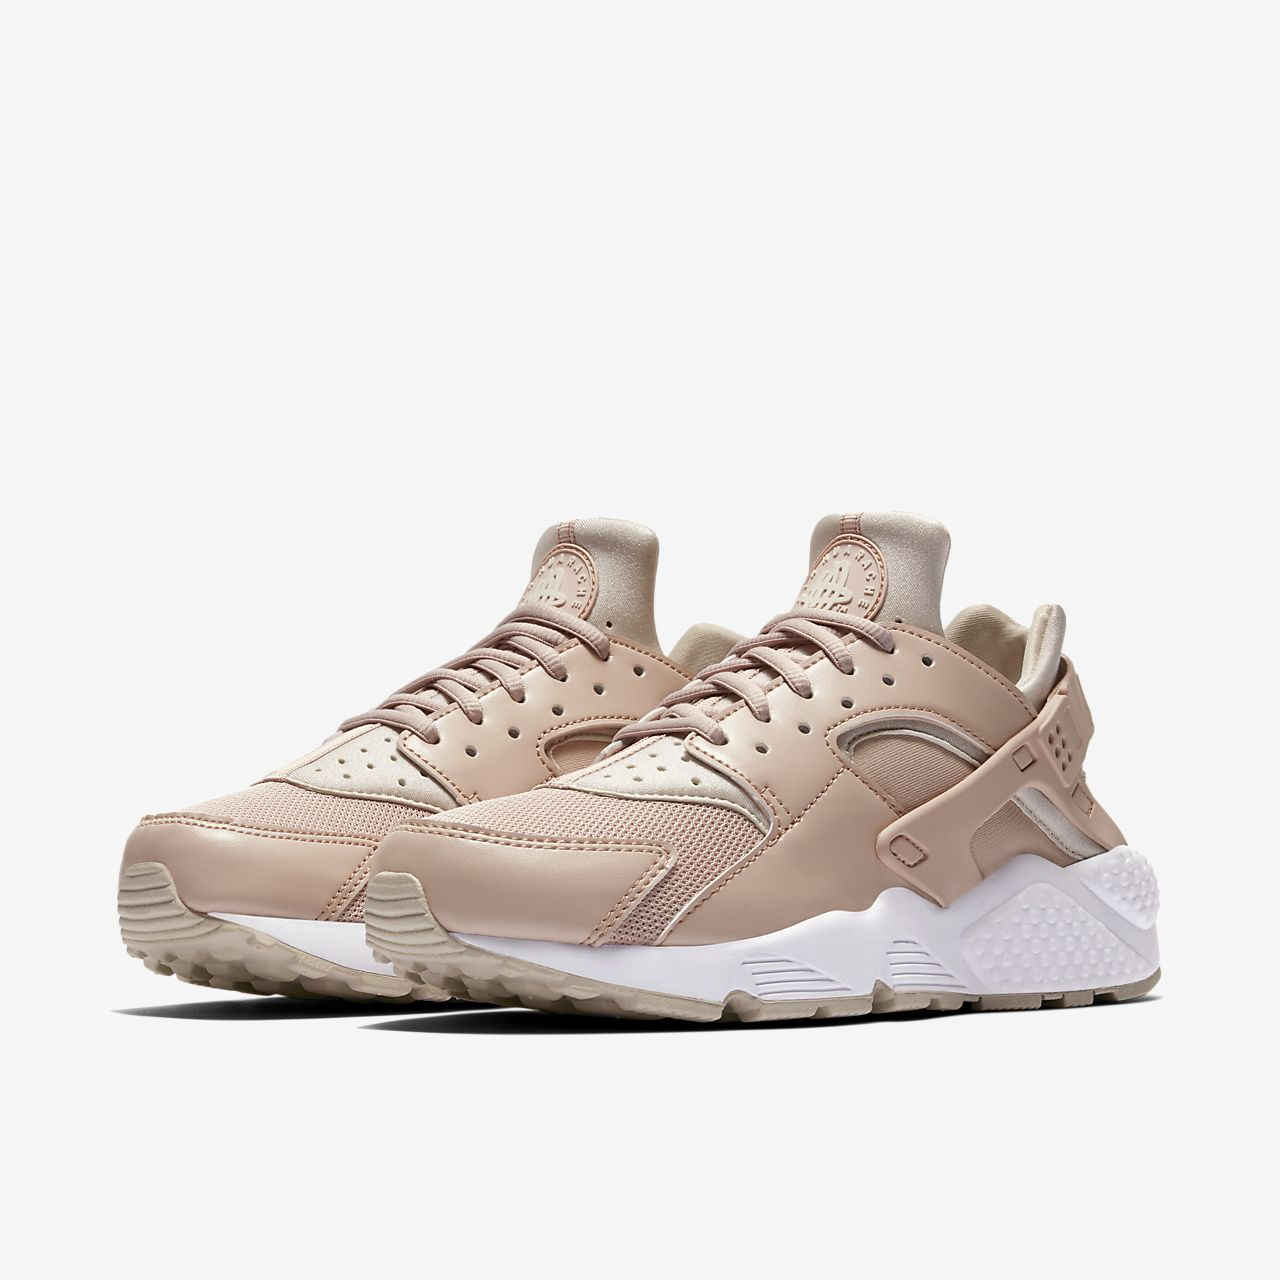 info for 5c5e7 1bceb ... Low Resolution Nike Air Huarache Damenschuh Nike Air Huarache  Damenschuh ...